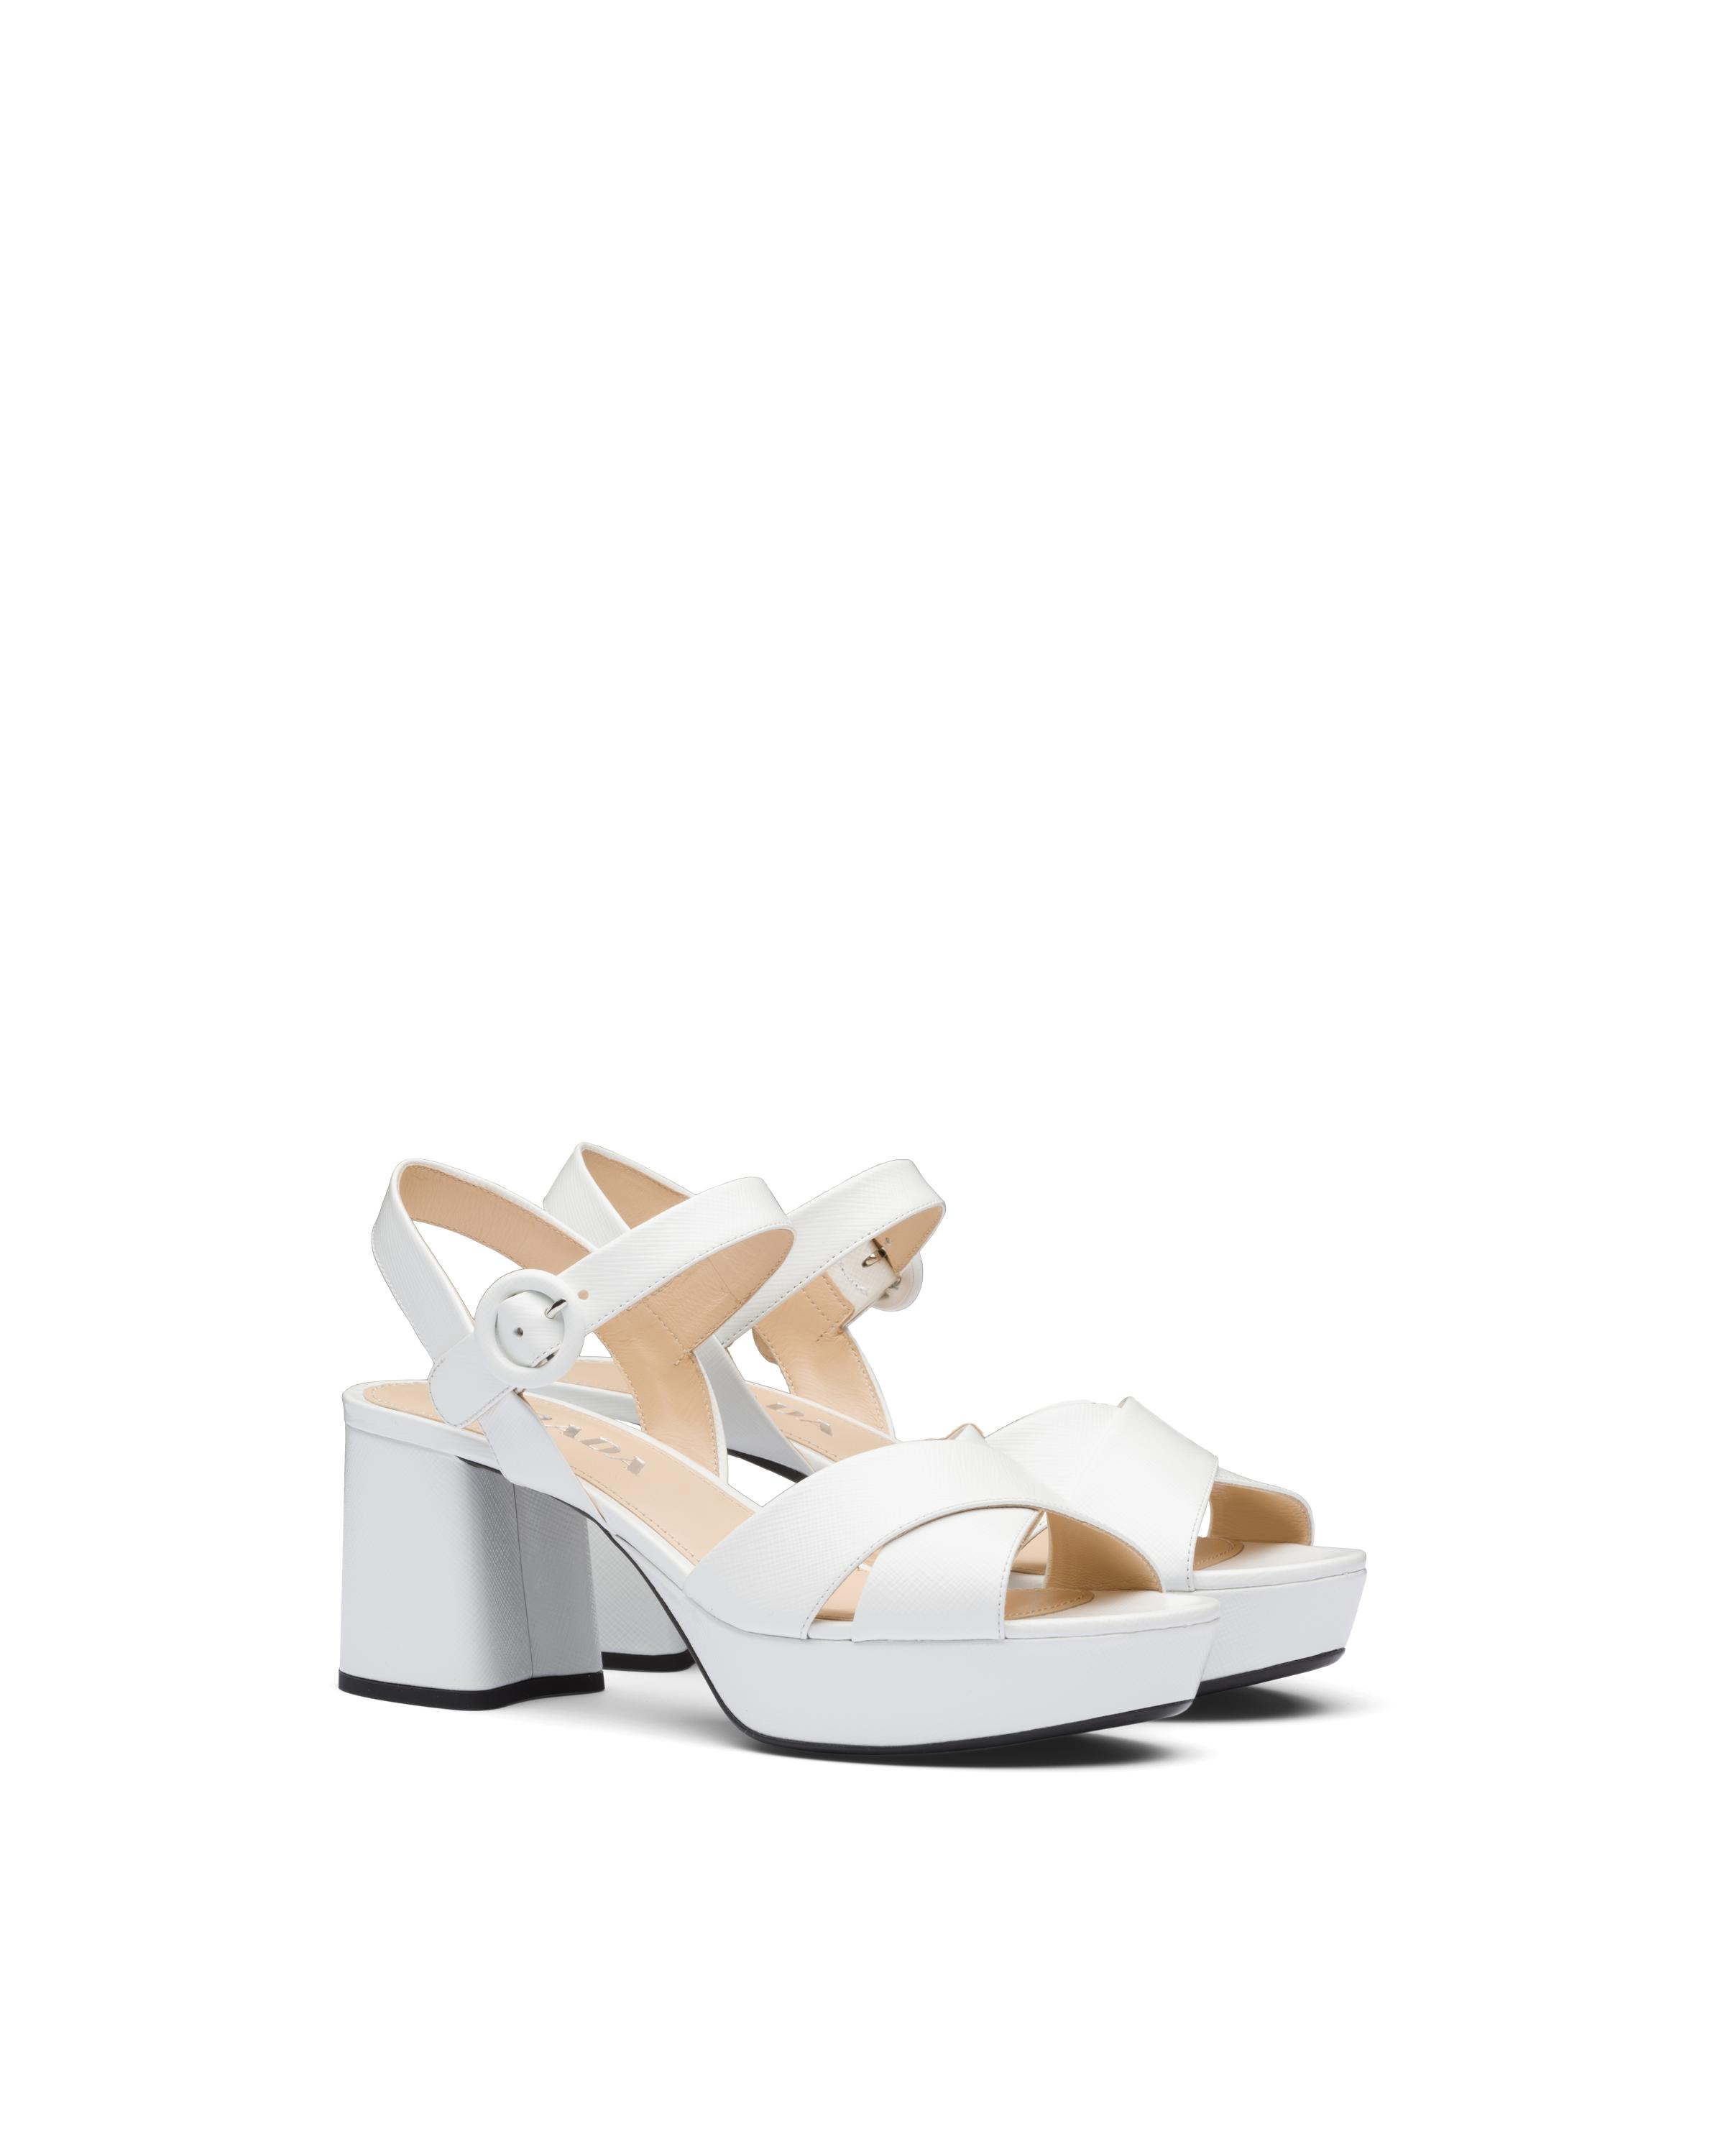 Patent Leather Sandals Women White 5